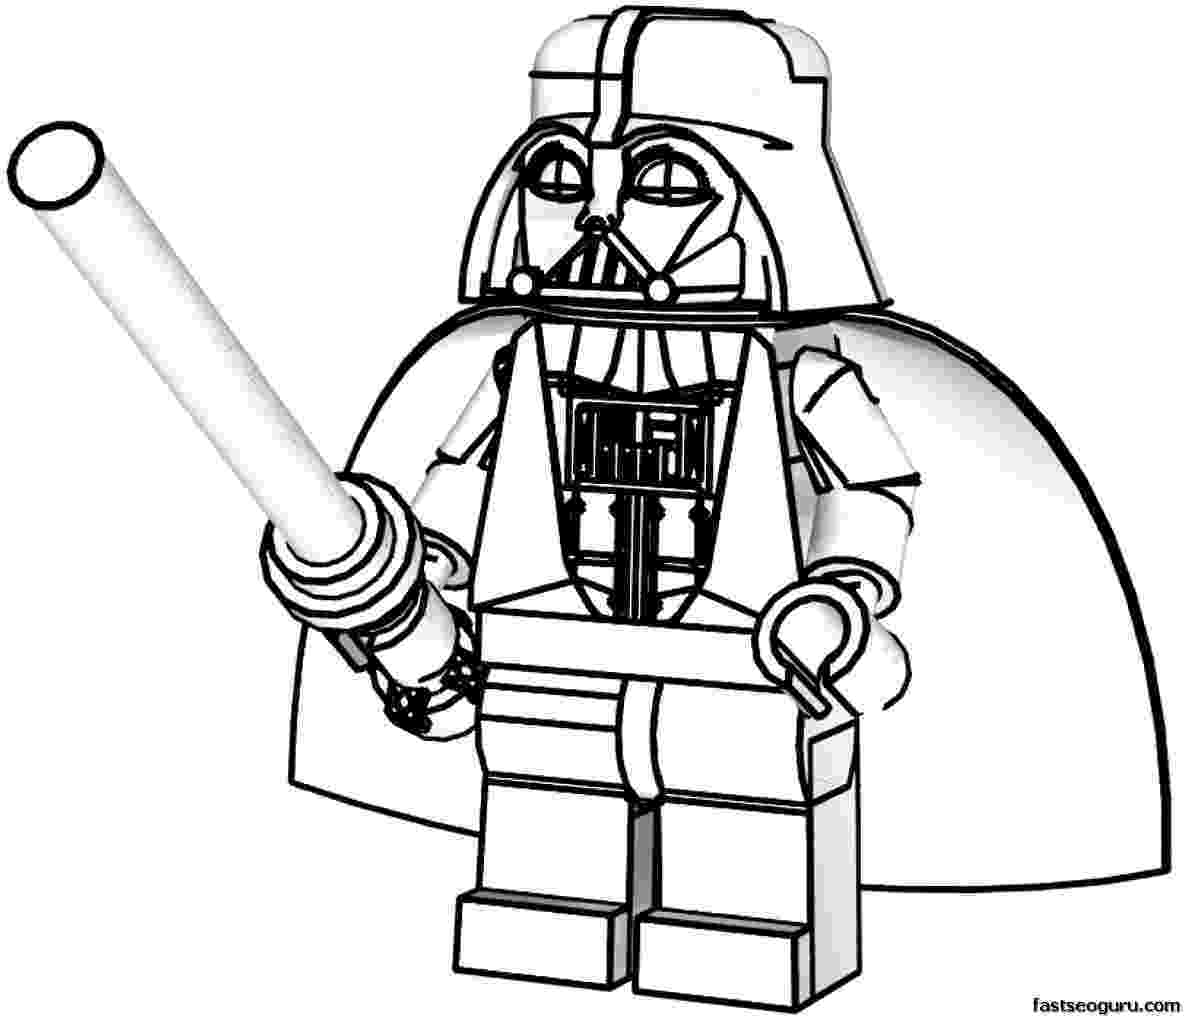 lego star wars coloring pages printable star wars coloring pages 2018 dr odd pages star coloring wars printable lego